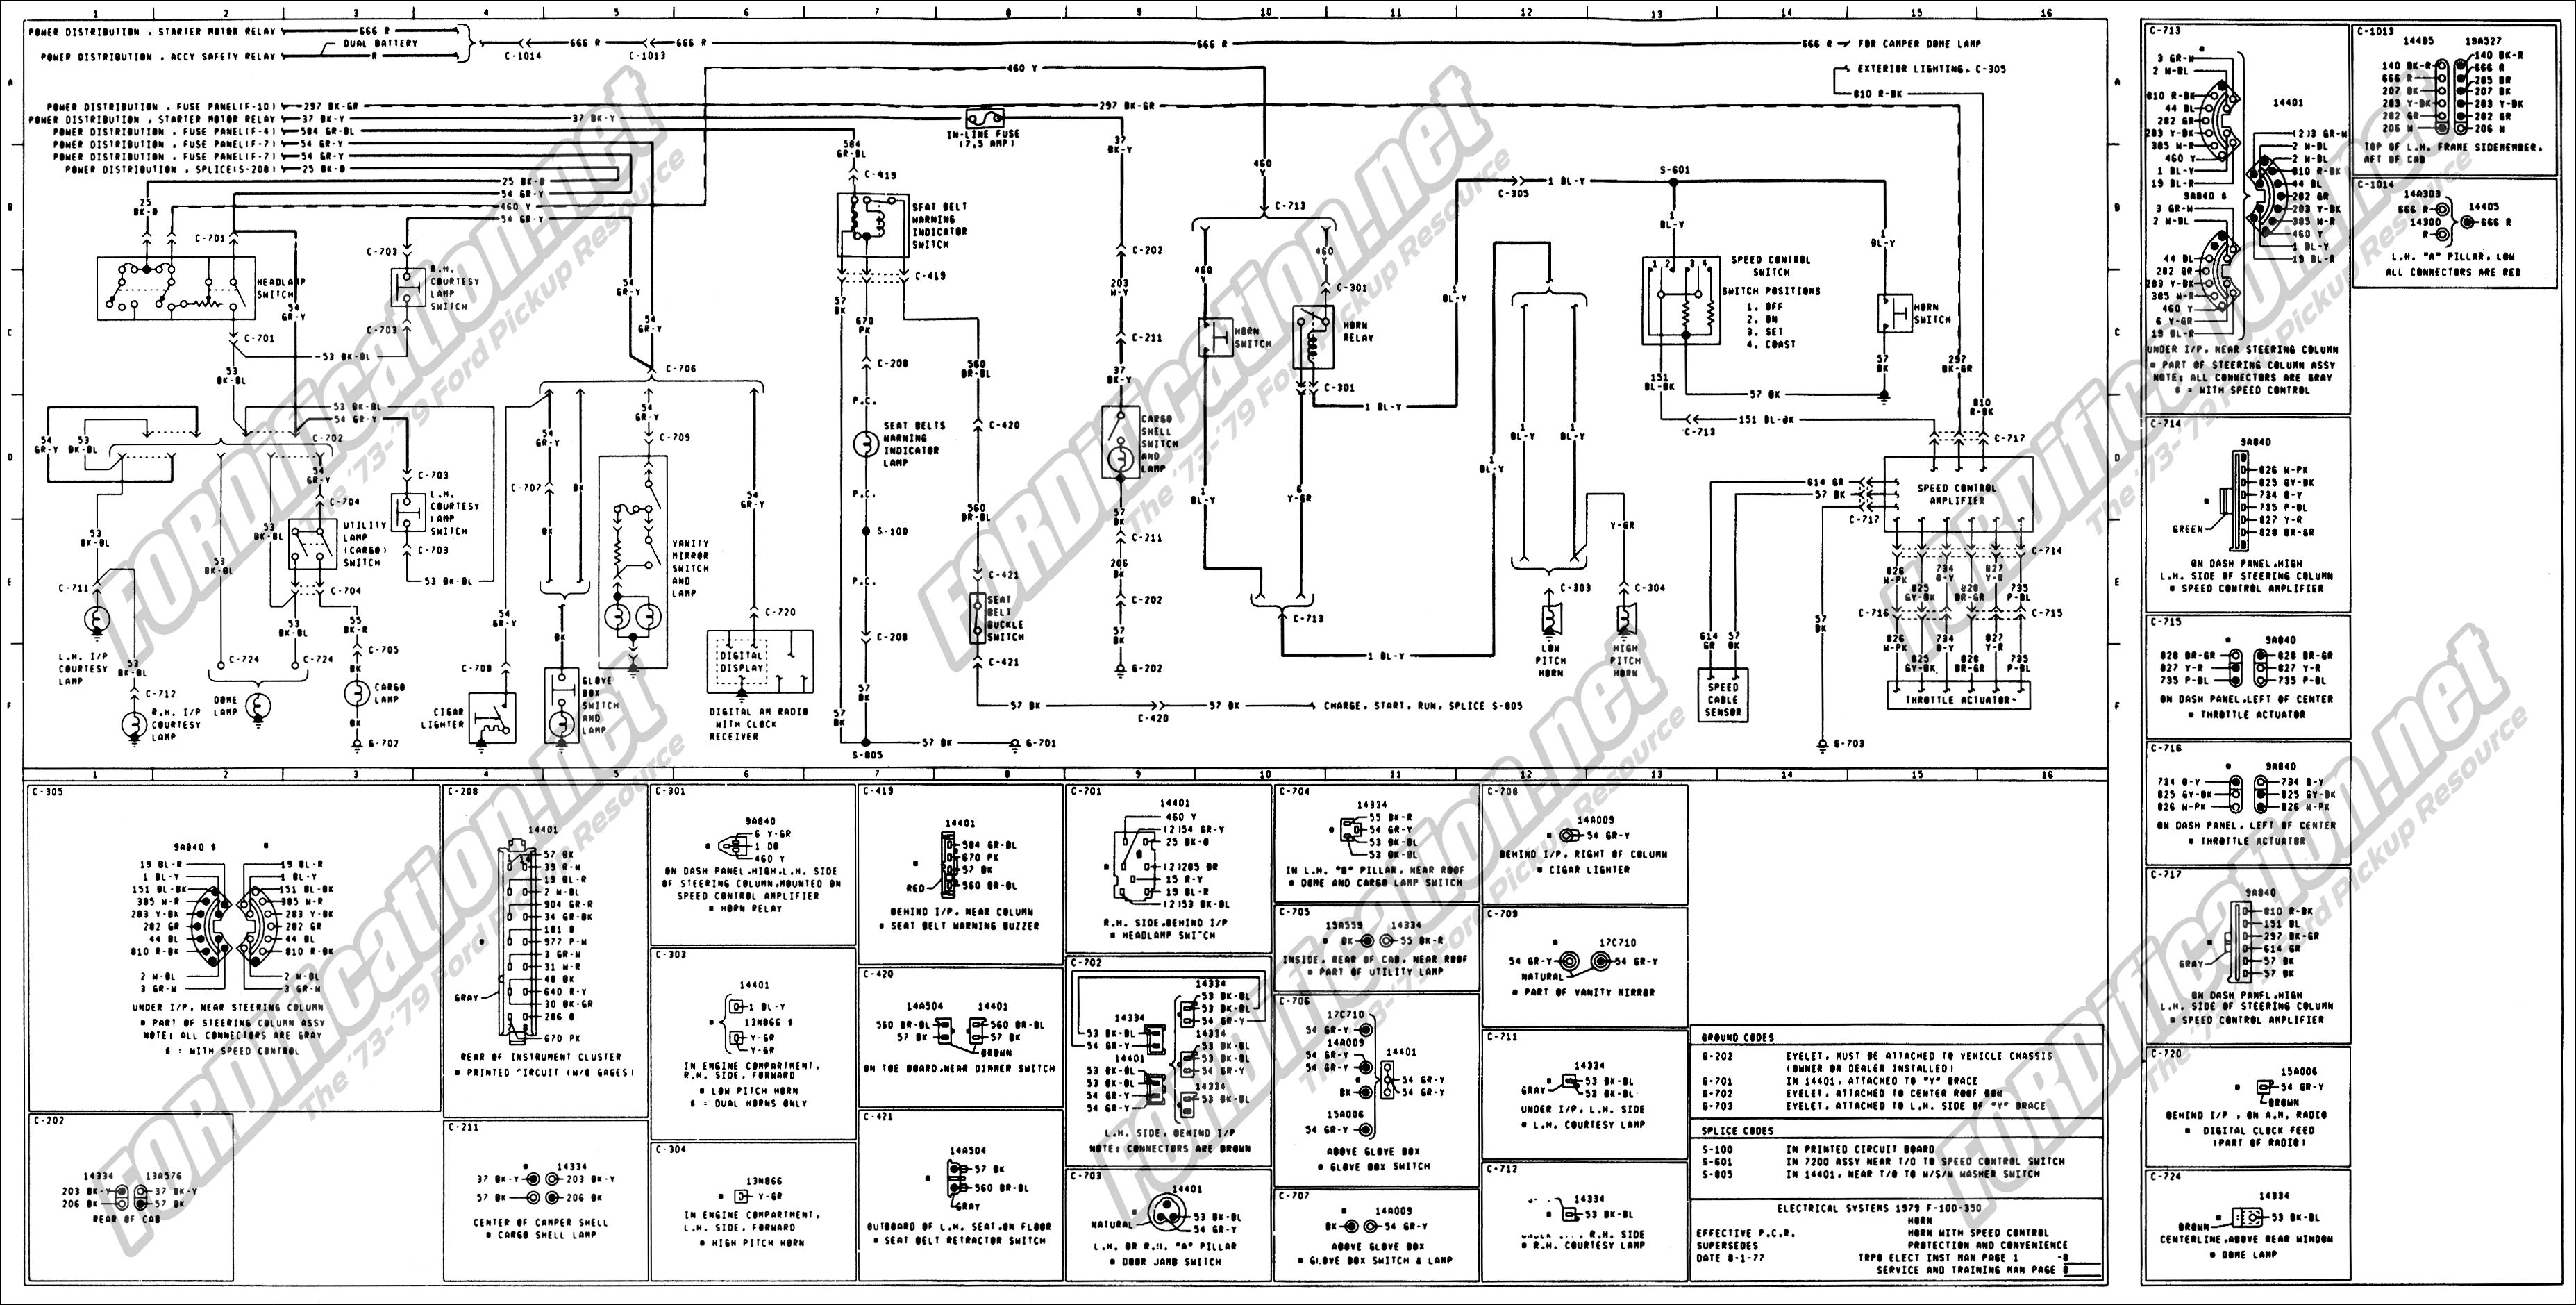 wiring_79master_8of9 1976 ford f150 wiring diagram 1979 ford truck wiring harness 1984 ford f150 wiring harness at edmiracle.co